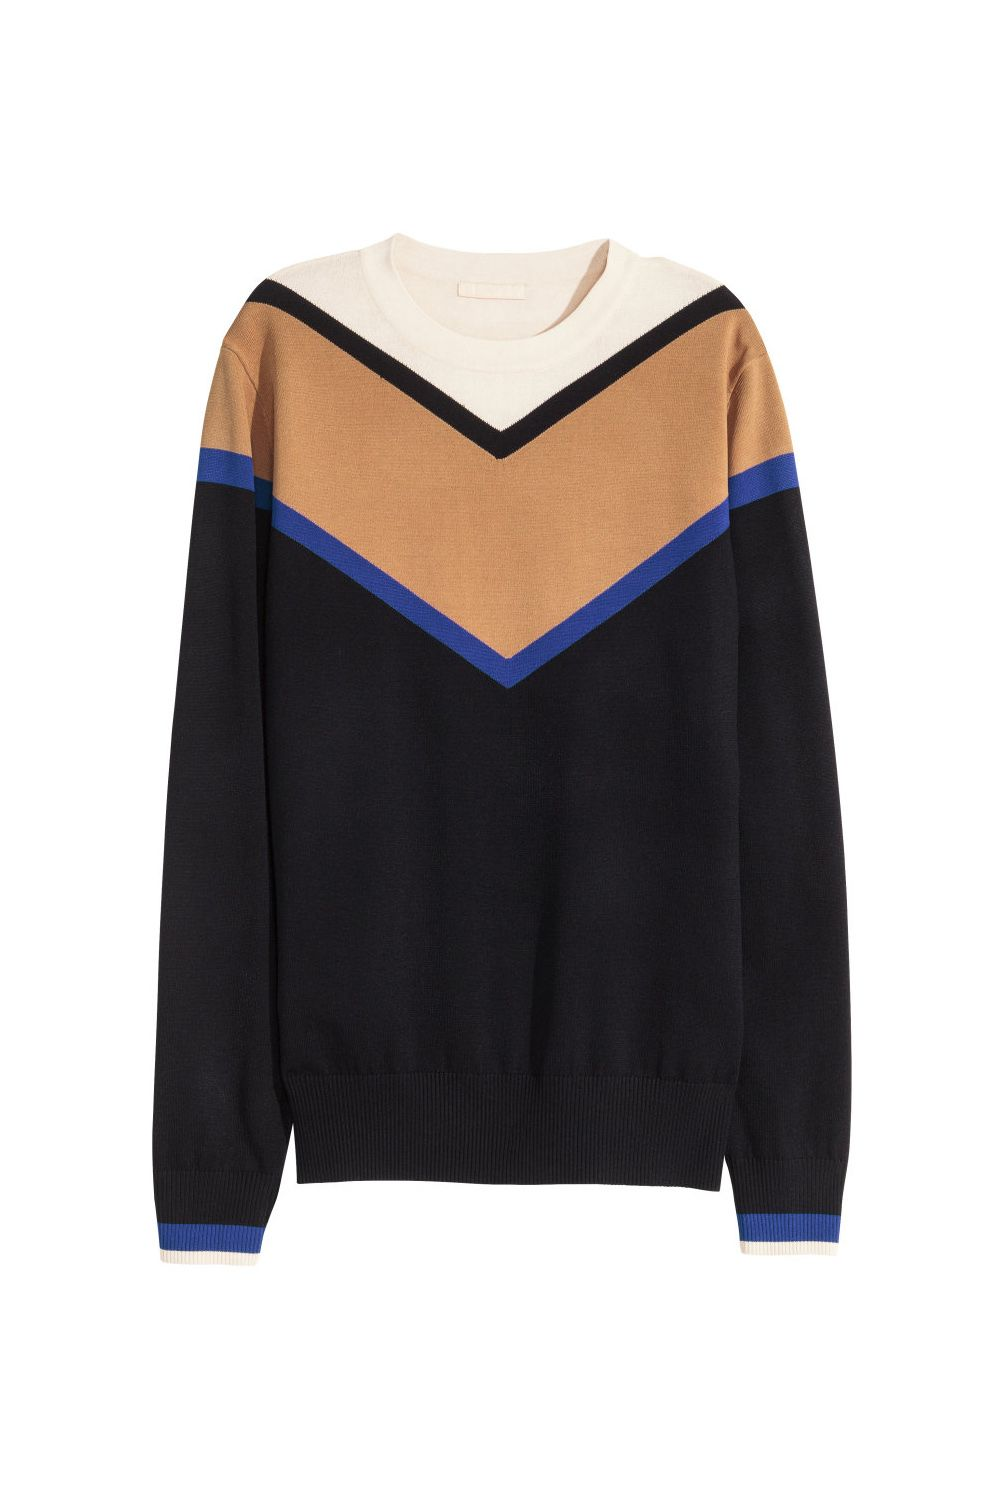 "<p>You know that this looks like something *expensive* you've seen before. </p><p>H&M sweater, $49.99, <a href=""http://www.hm.com/us/product/33969?article=33969-A"">hm.com</a>.</p>"